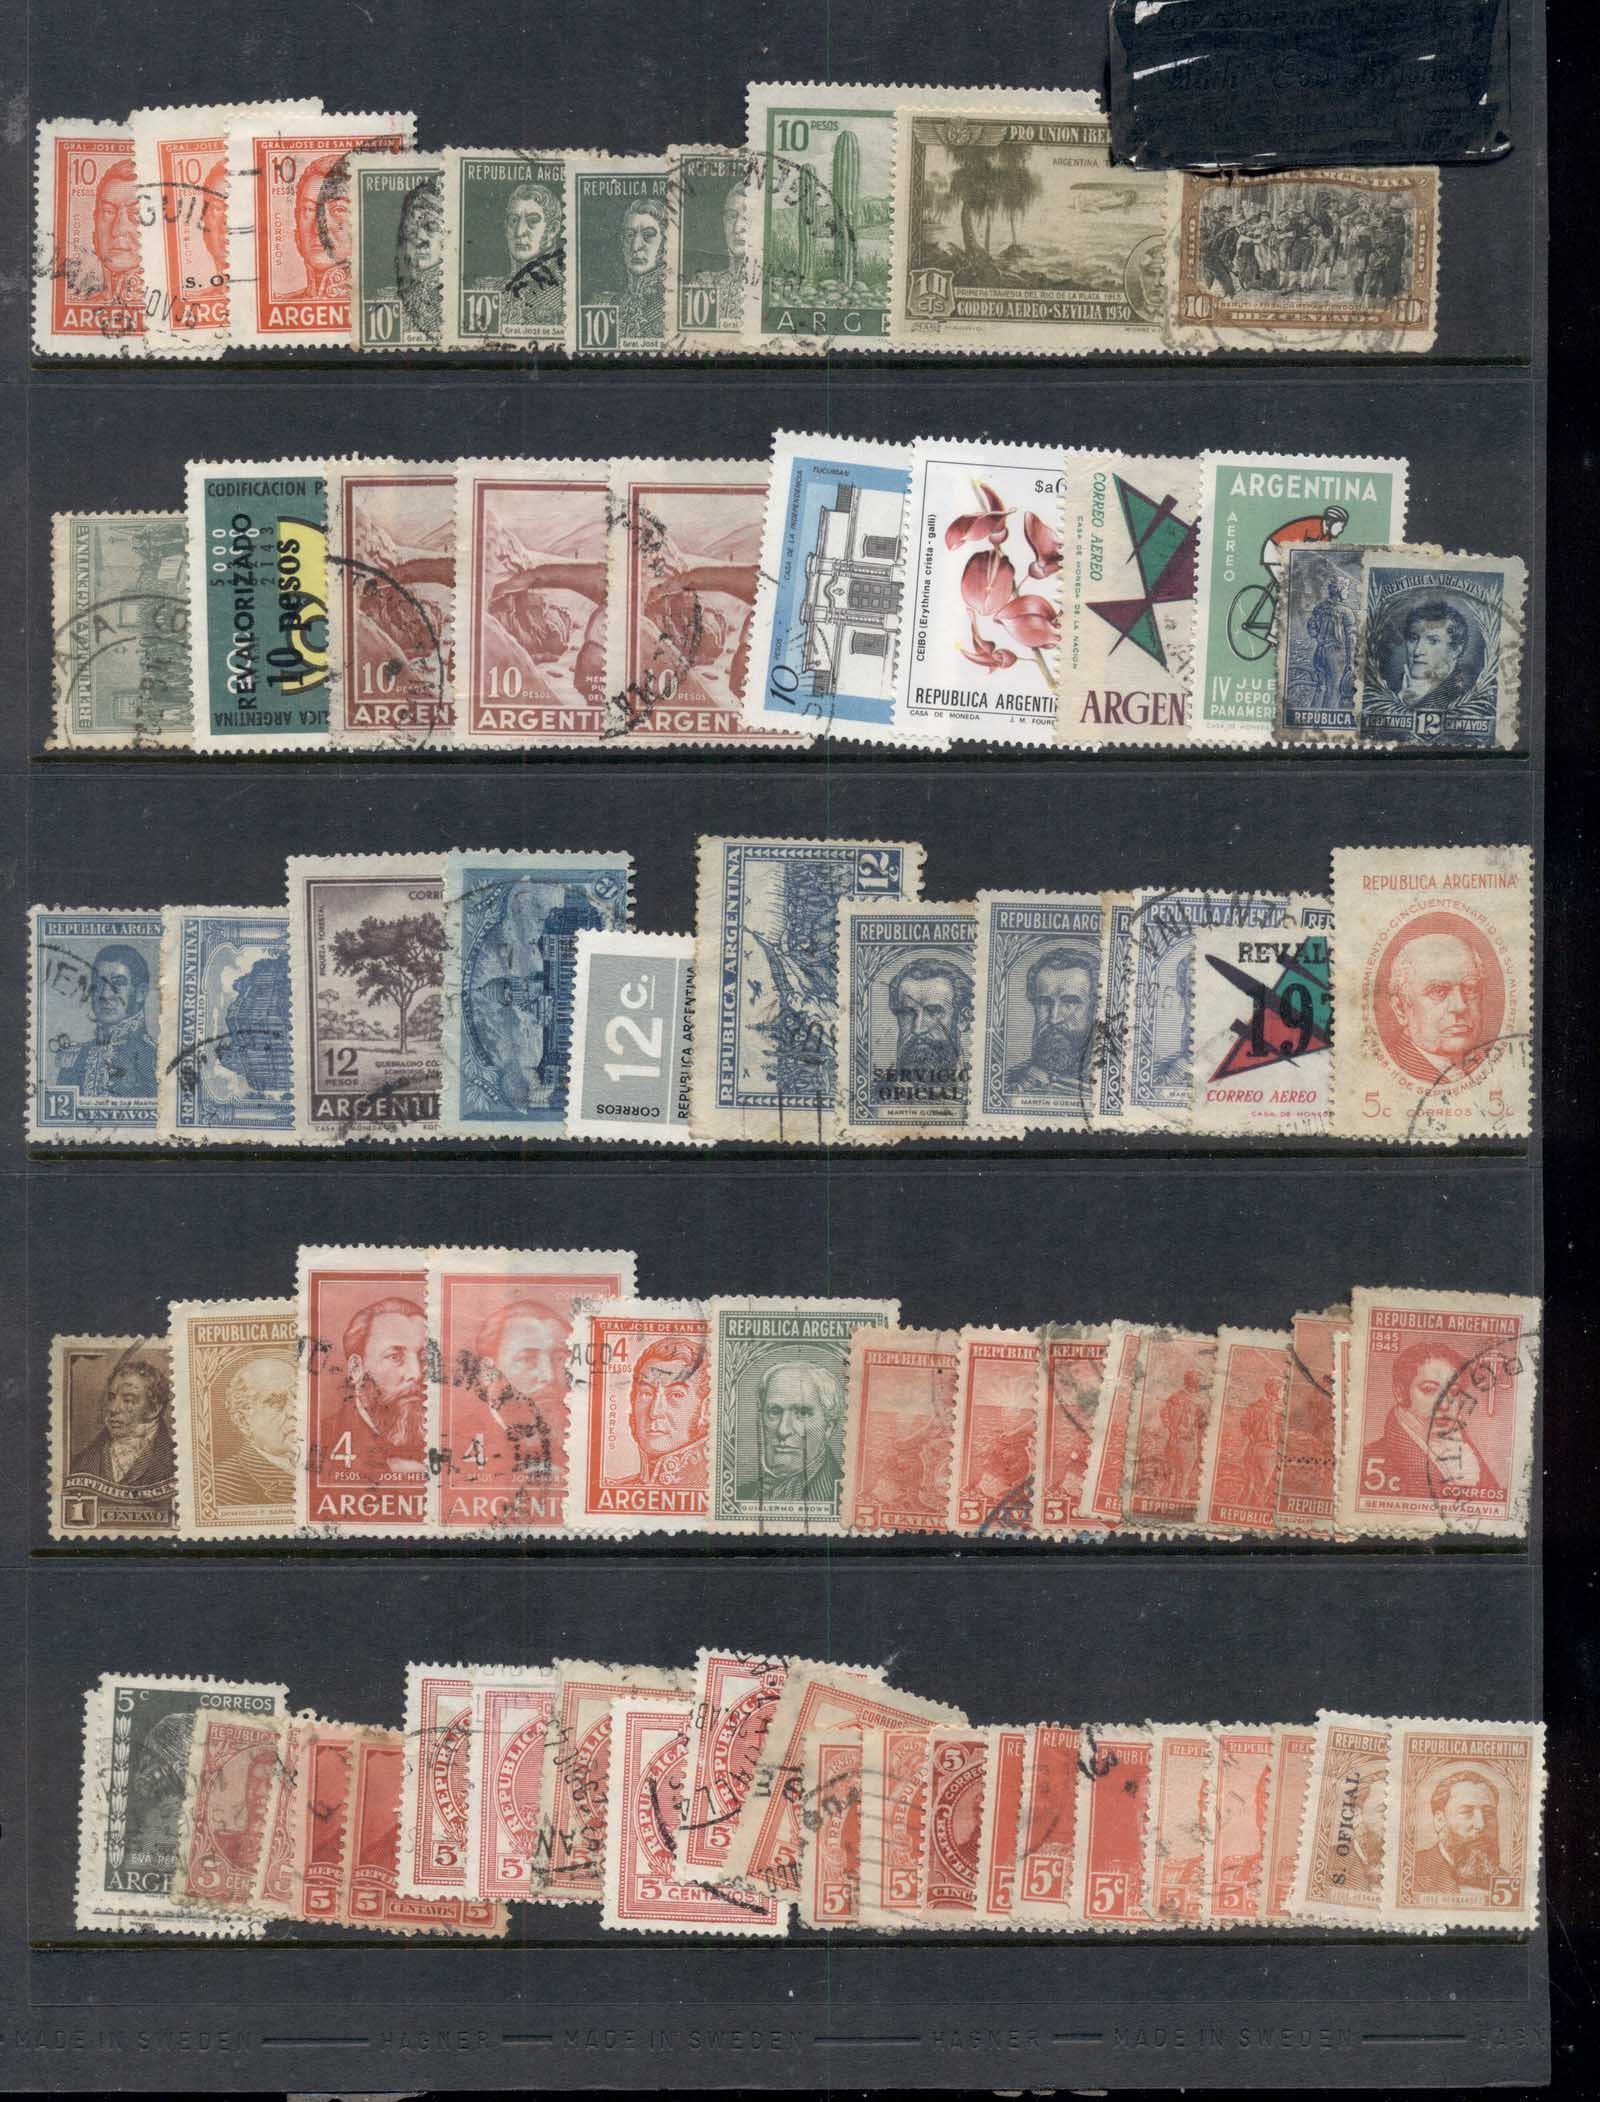 Americas, North South & central Assorted oddments, Argentina 6 scans